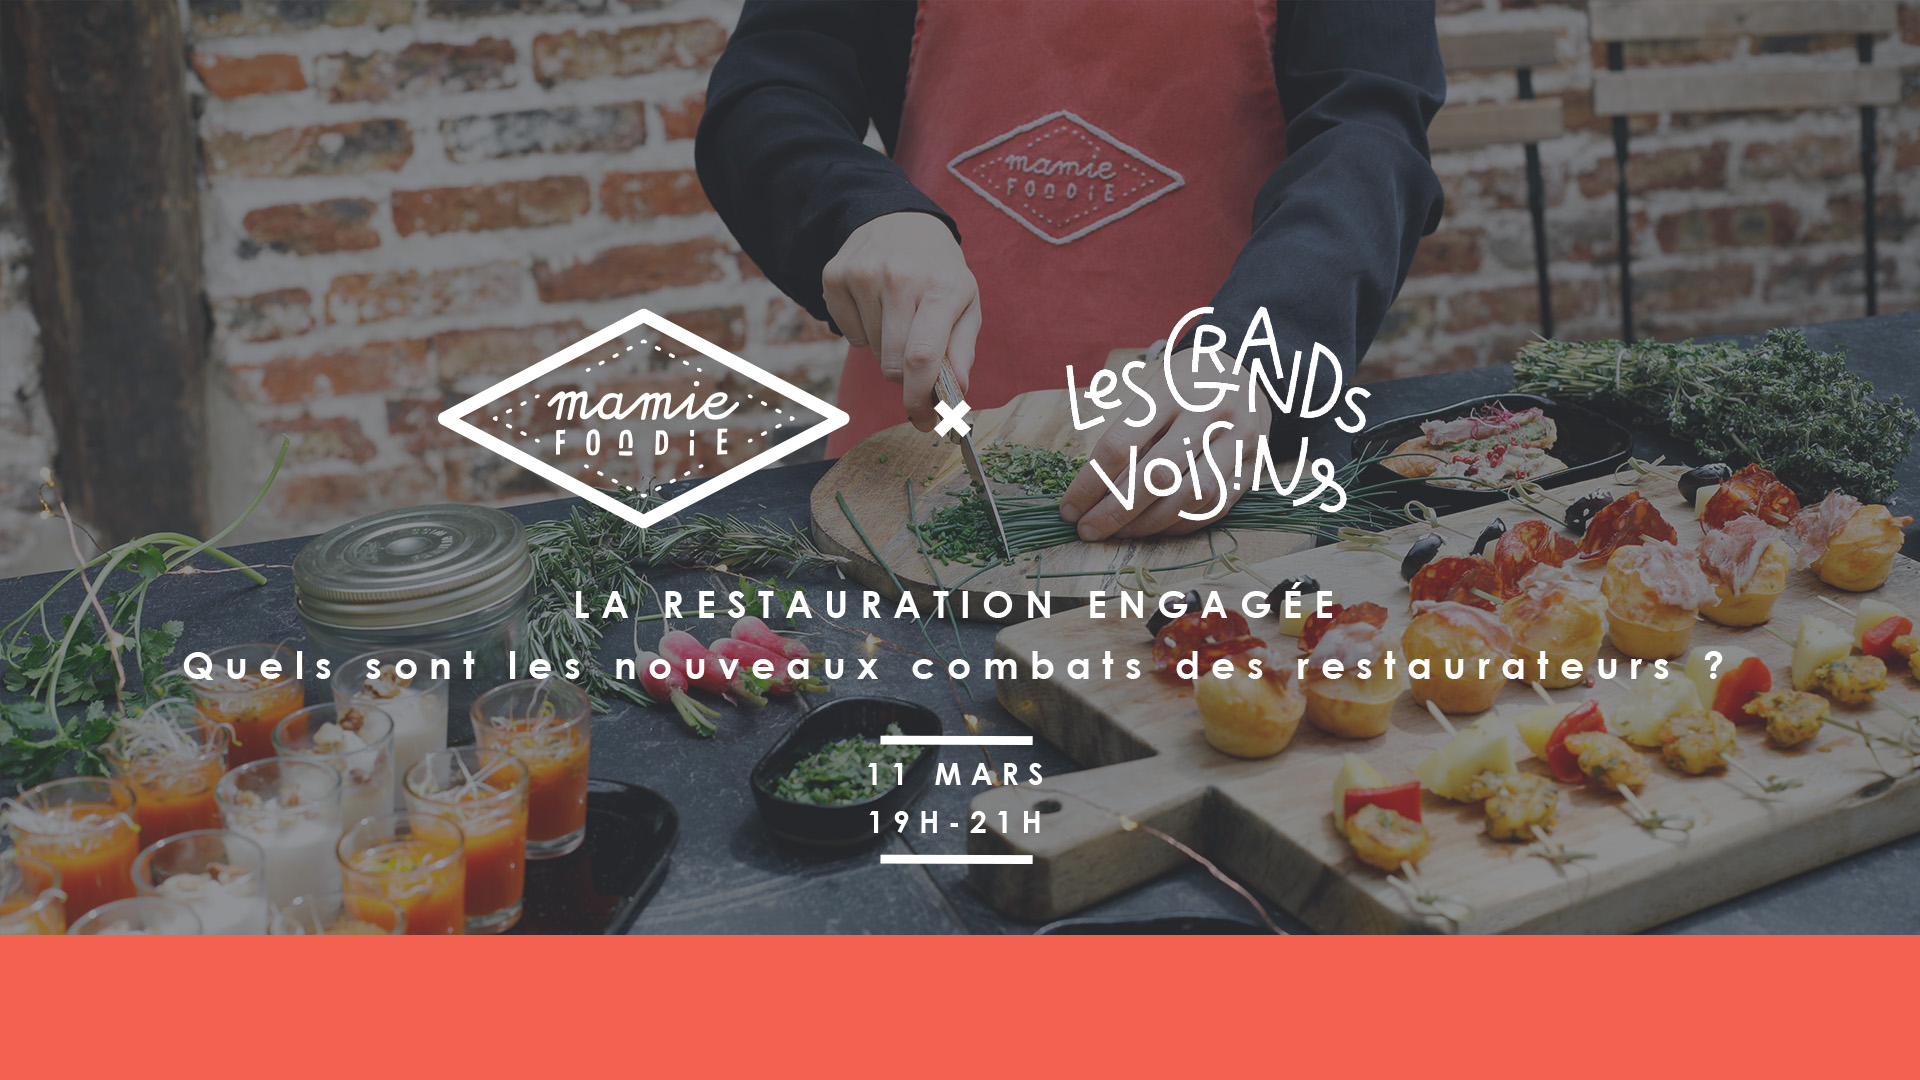 Meet up – La restauration engagée le 11/03